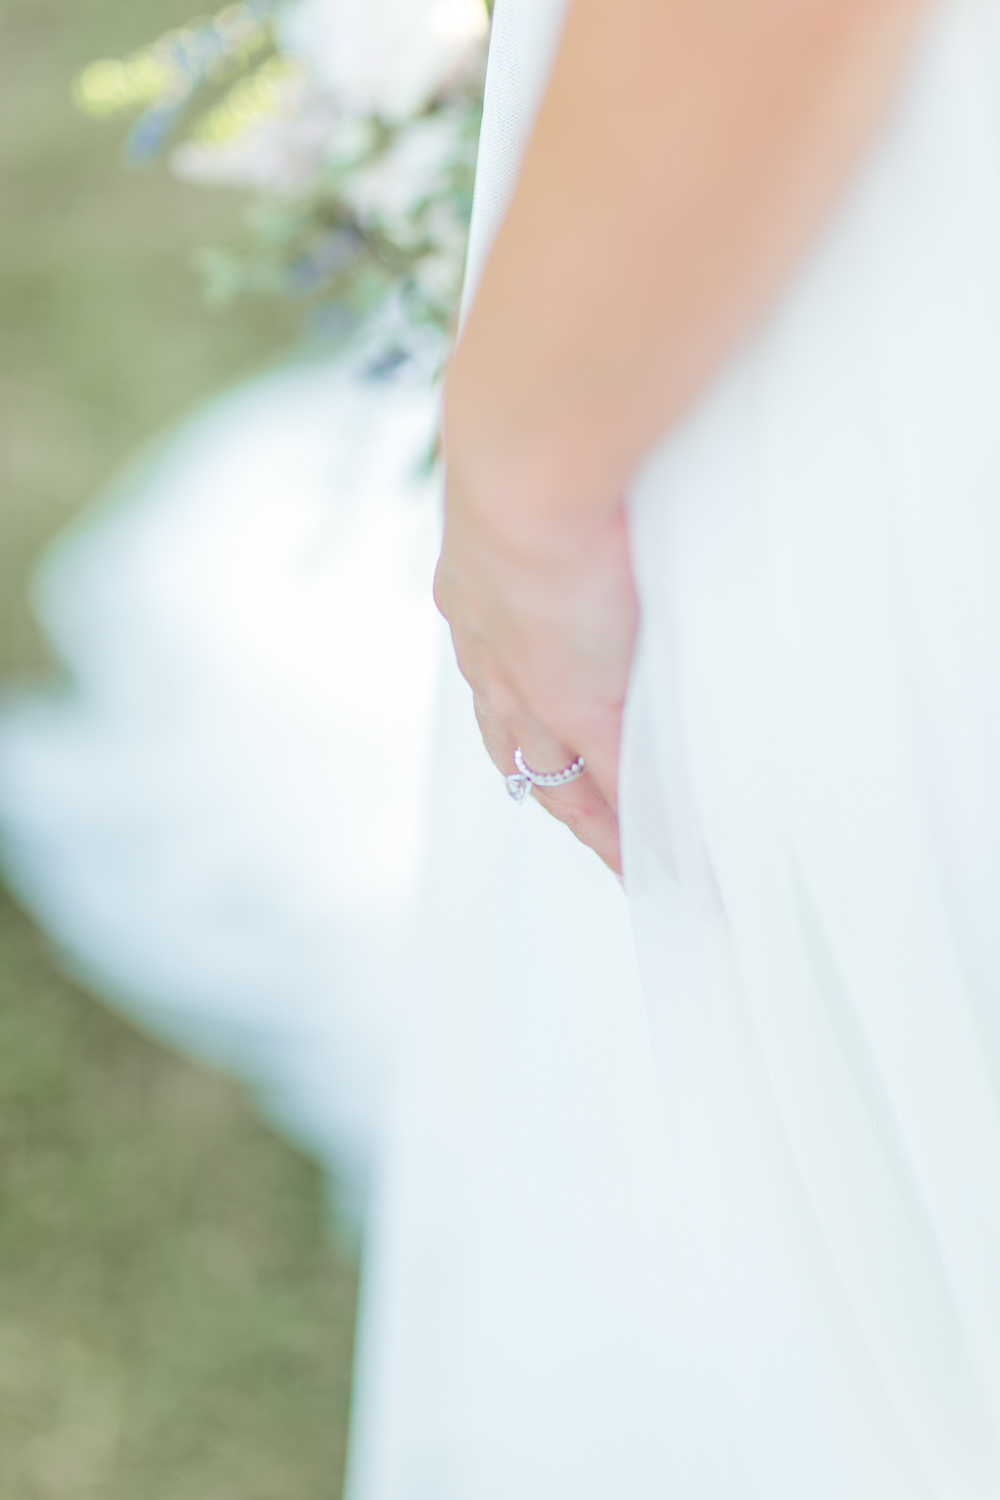 wedding ring in a tulle dress while the bride is holding the skirt